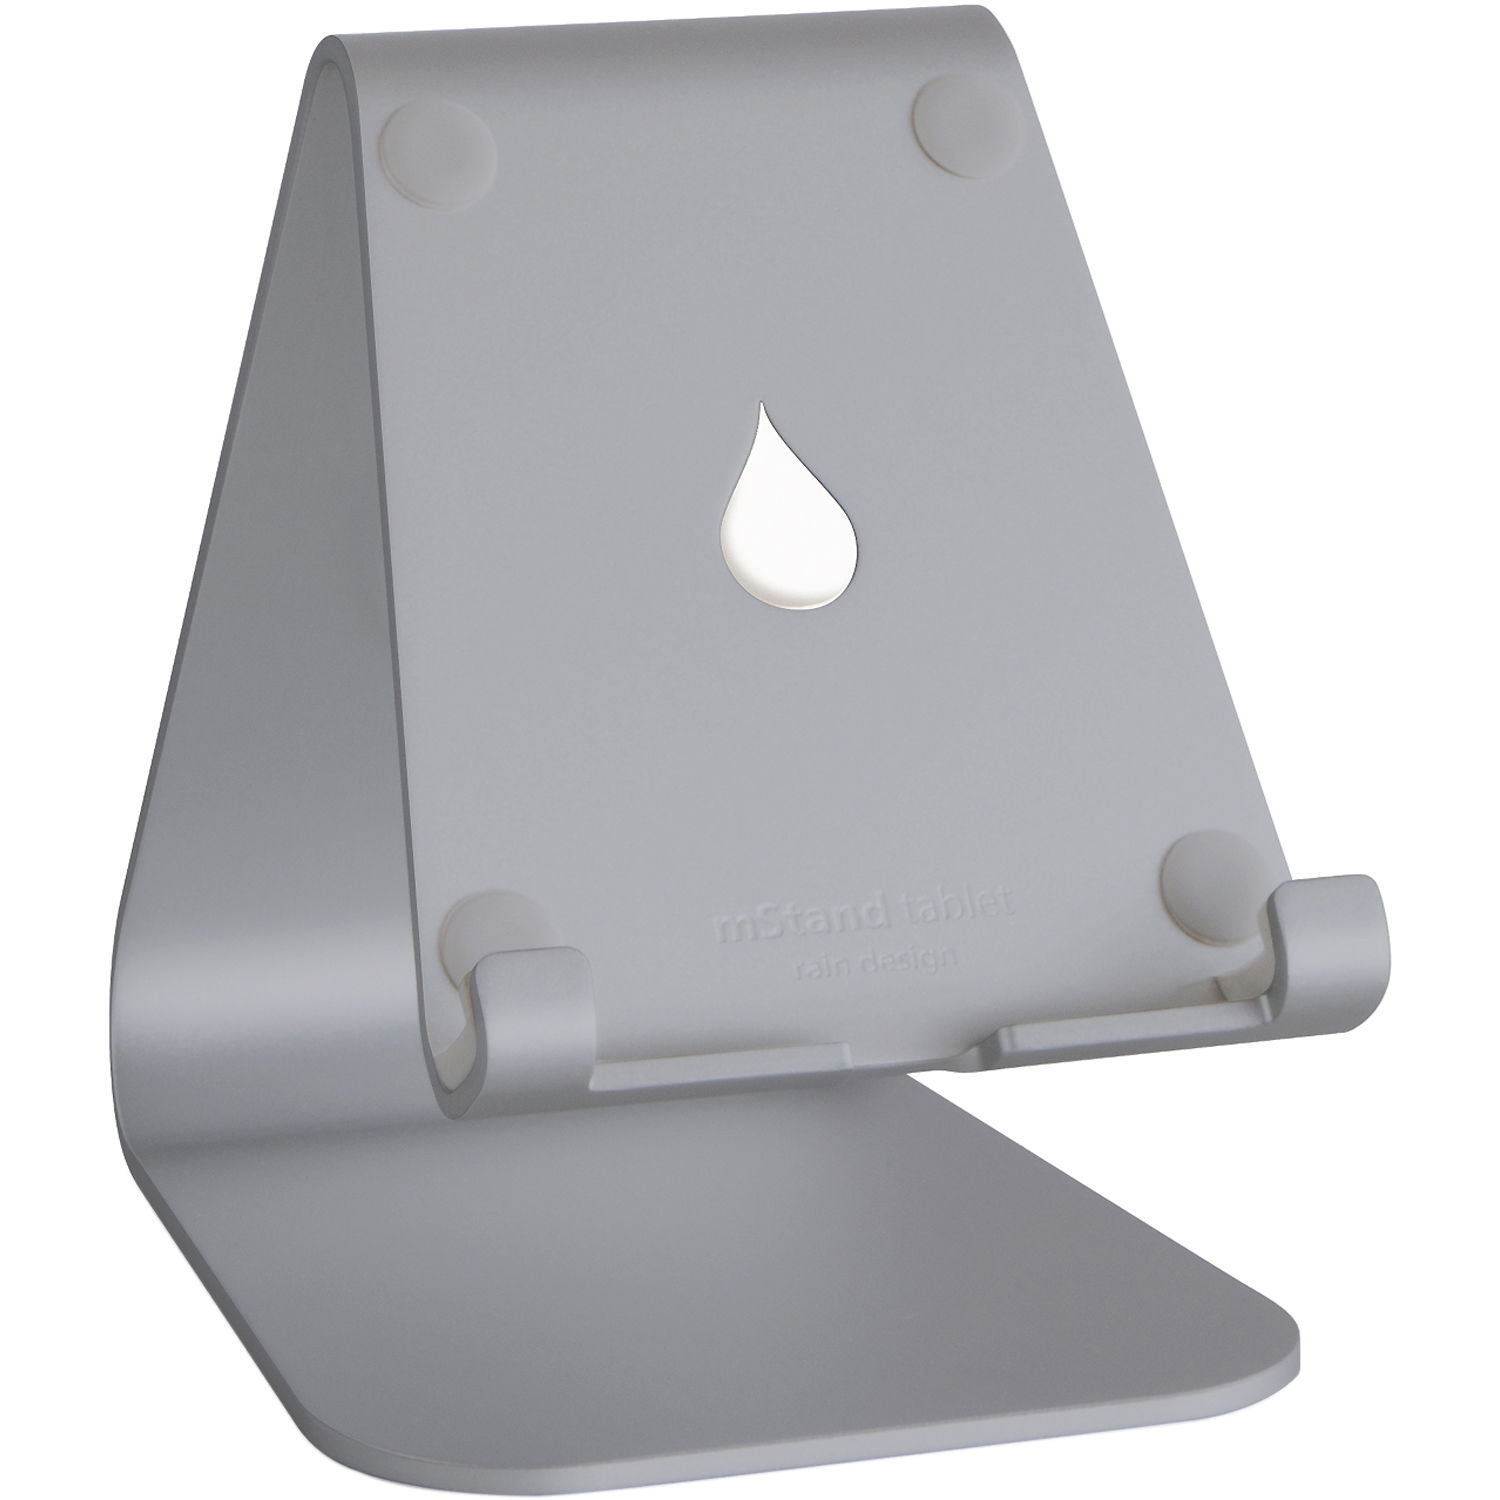 Suport Rain Design mStand Tablet Stand, Space Gray, pentru Apple iPad